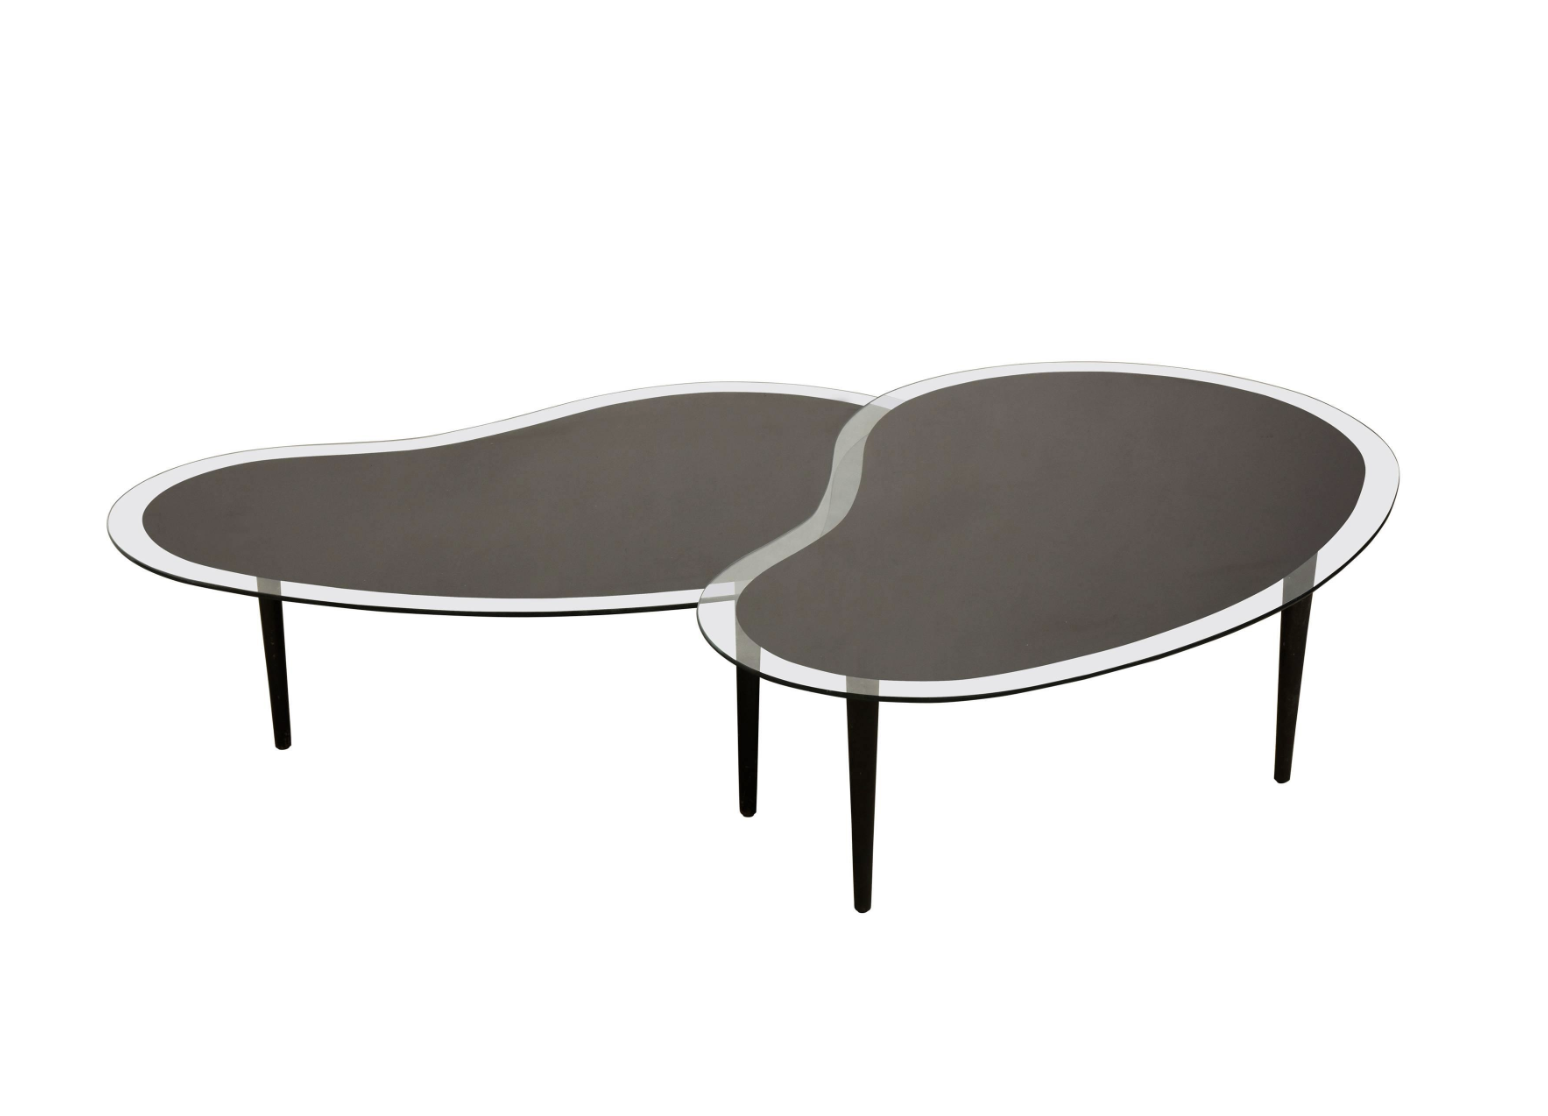 Nesting Kidney, Boomerang Glass Top Coffee Tables